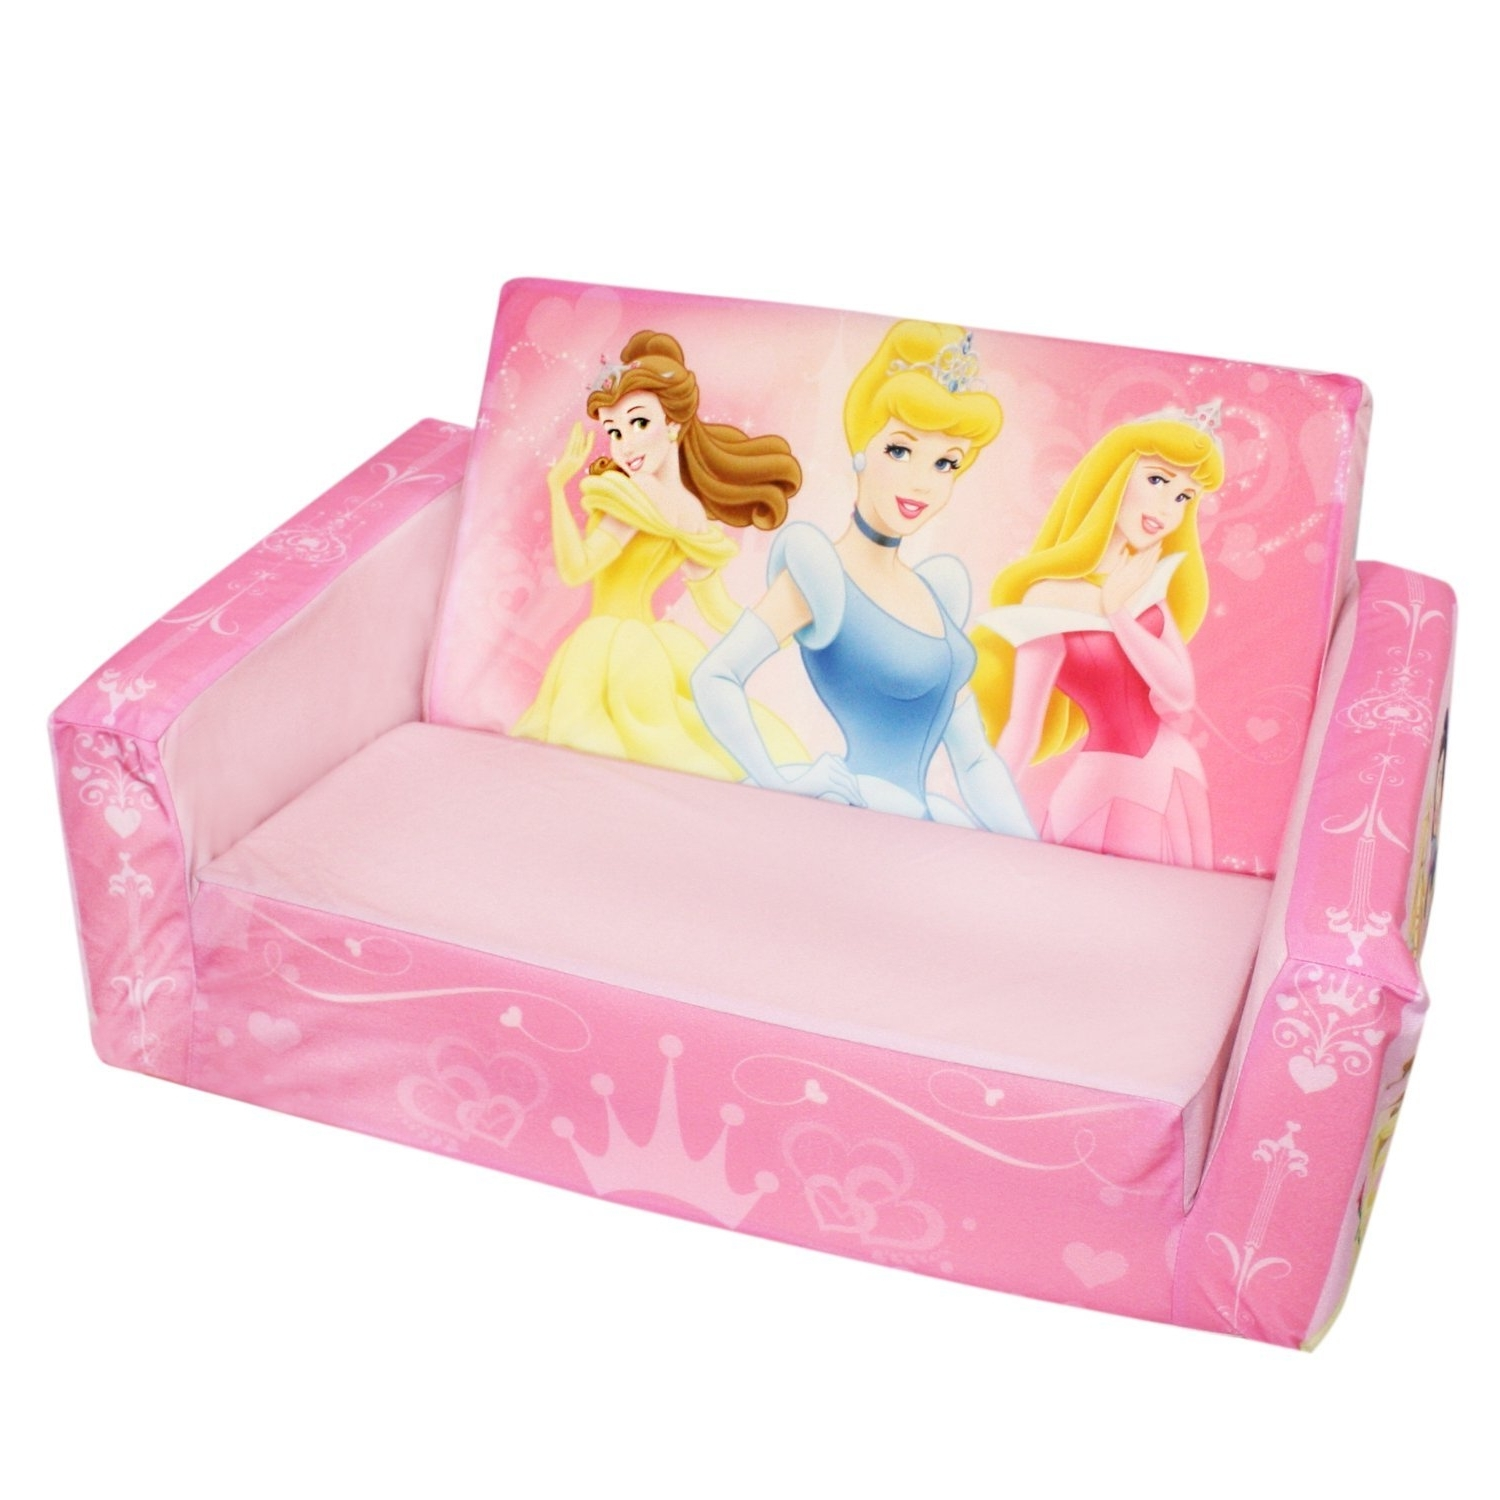 Most Recent Disney Sofa Chairs Throughout Disney Princess Fold Out Couch — Randy Gregory Design : Fold Out (View 14 of 20)